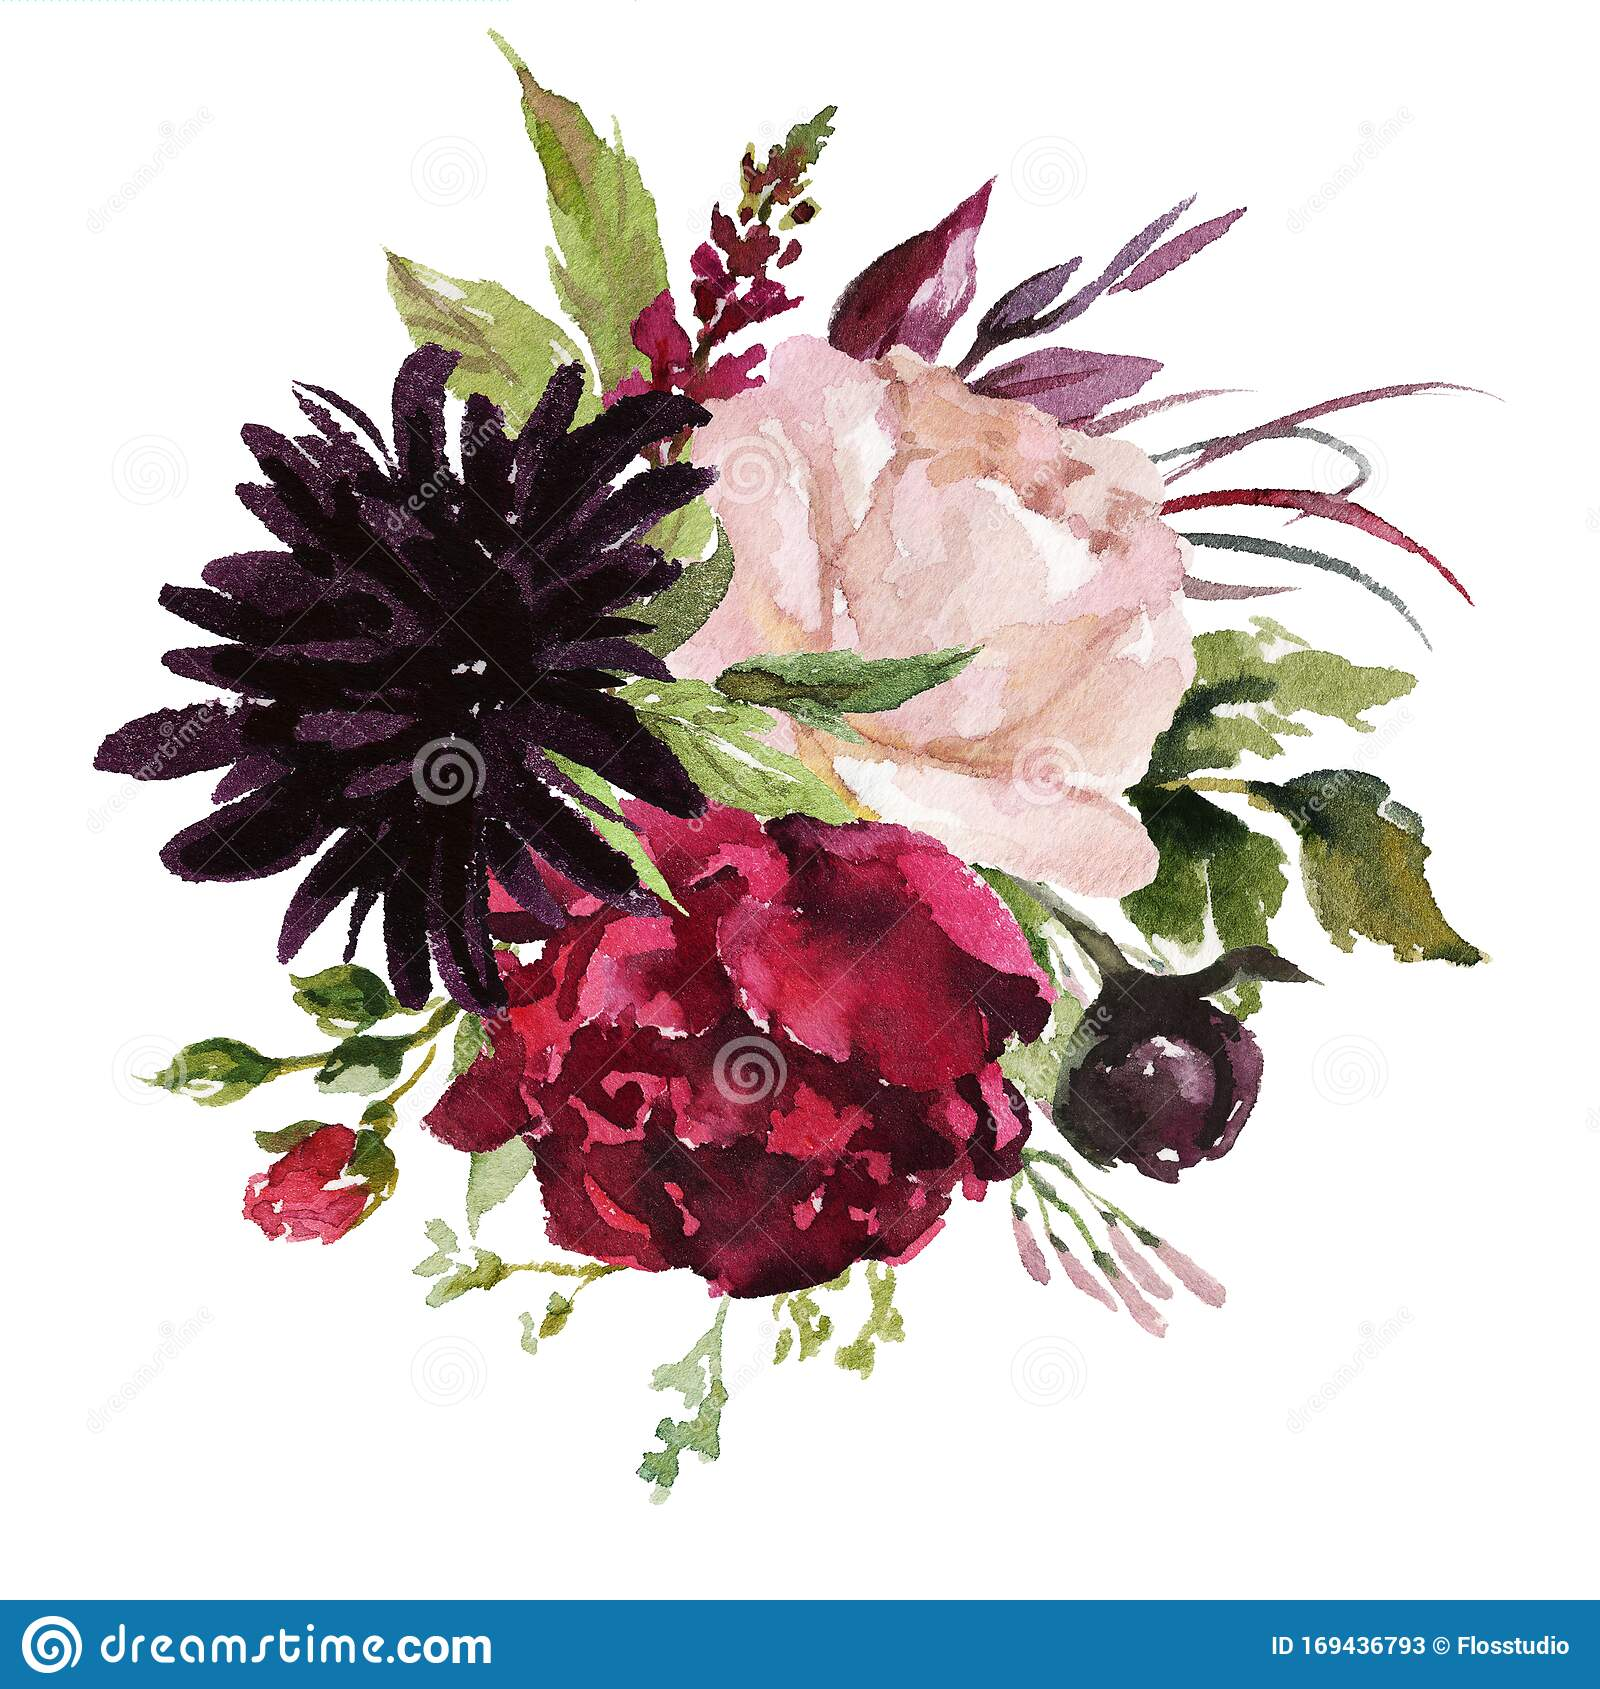 Watercolor Floral Illustration Flowers Burgundy Bouquet Stock Illustration Illustration Of Blossom Decoration 169436793